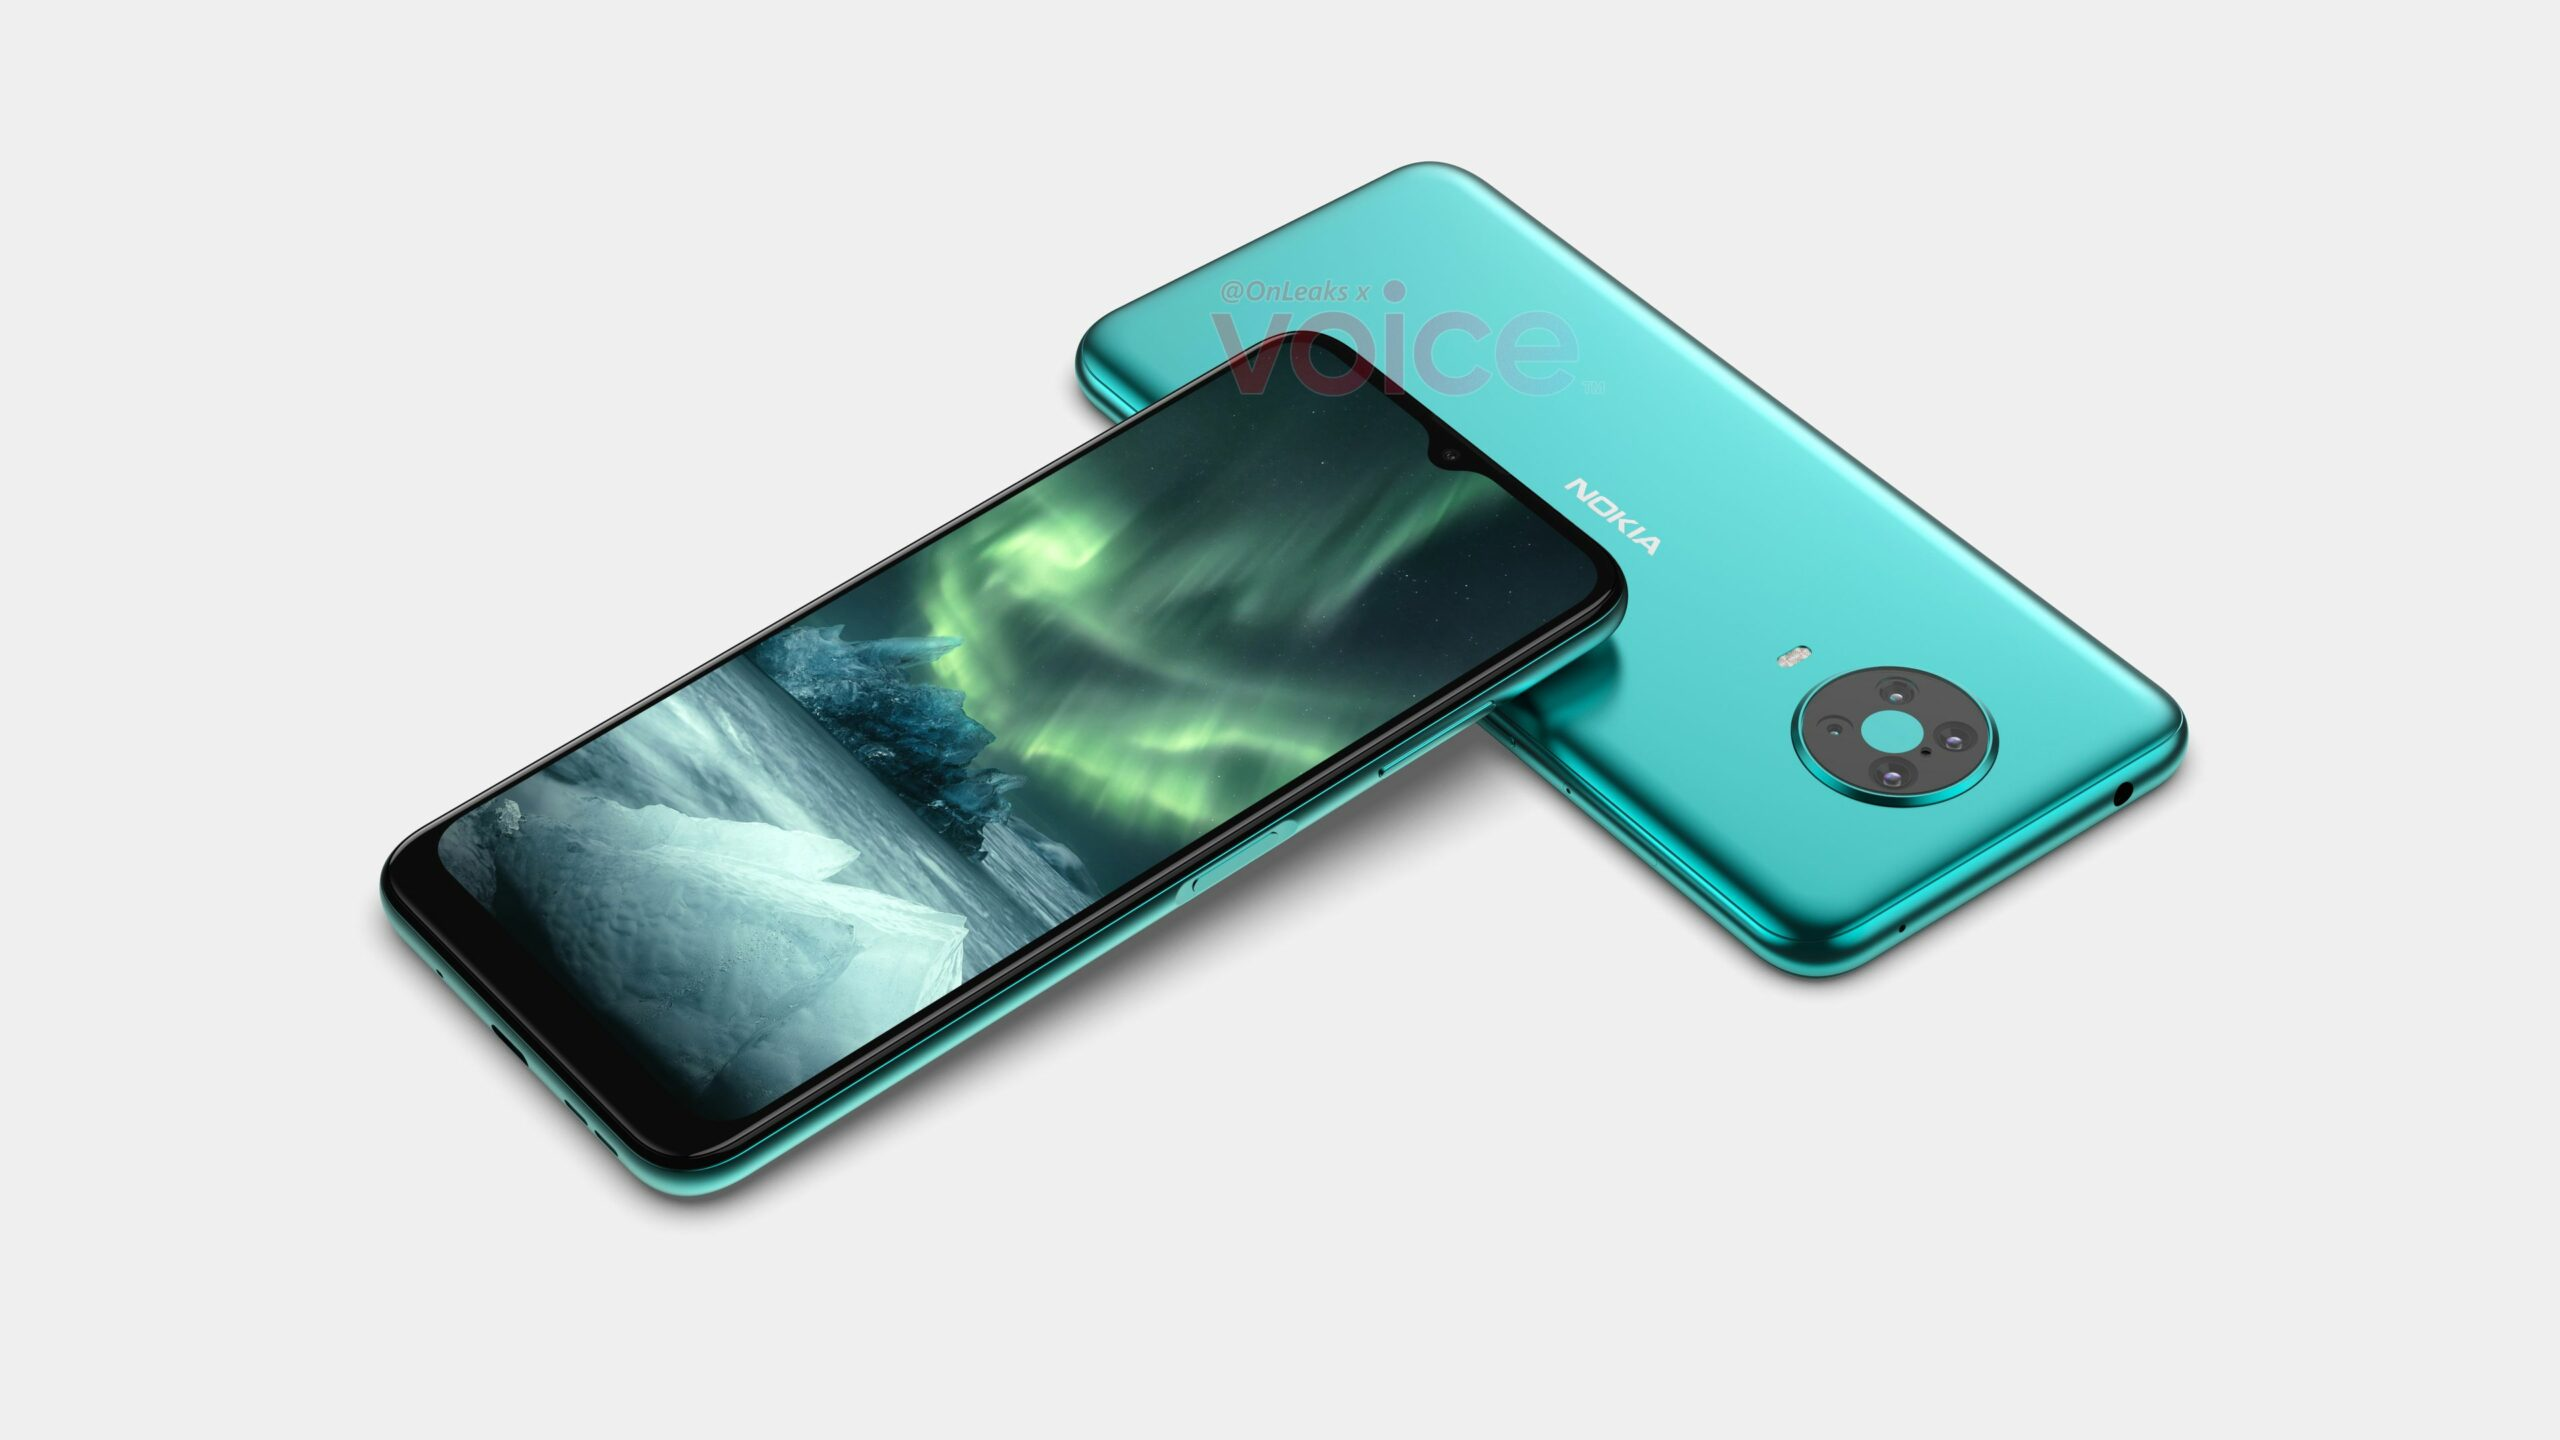 Nokia 1.4, 6.3, 7.3 to reportedly launch in Q1 or Q2 of 2021